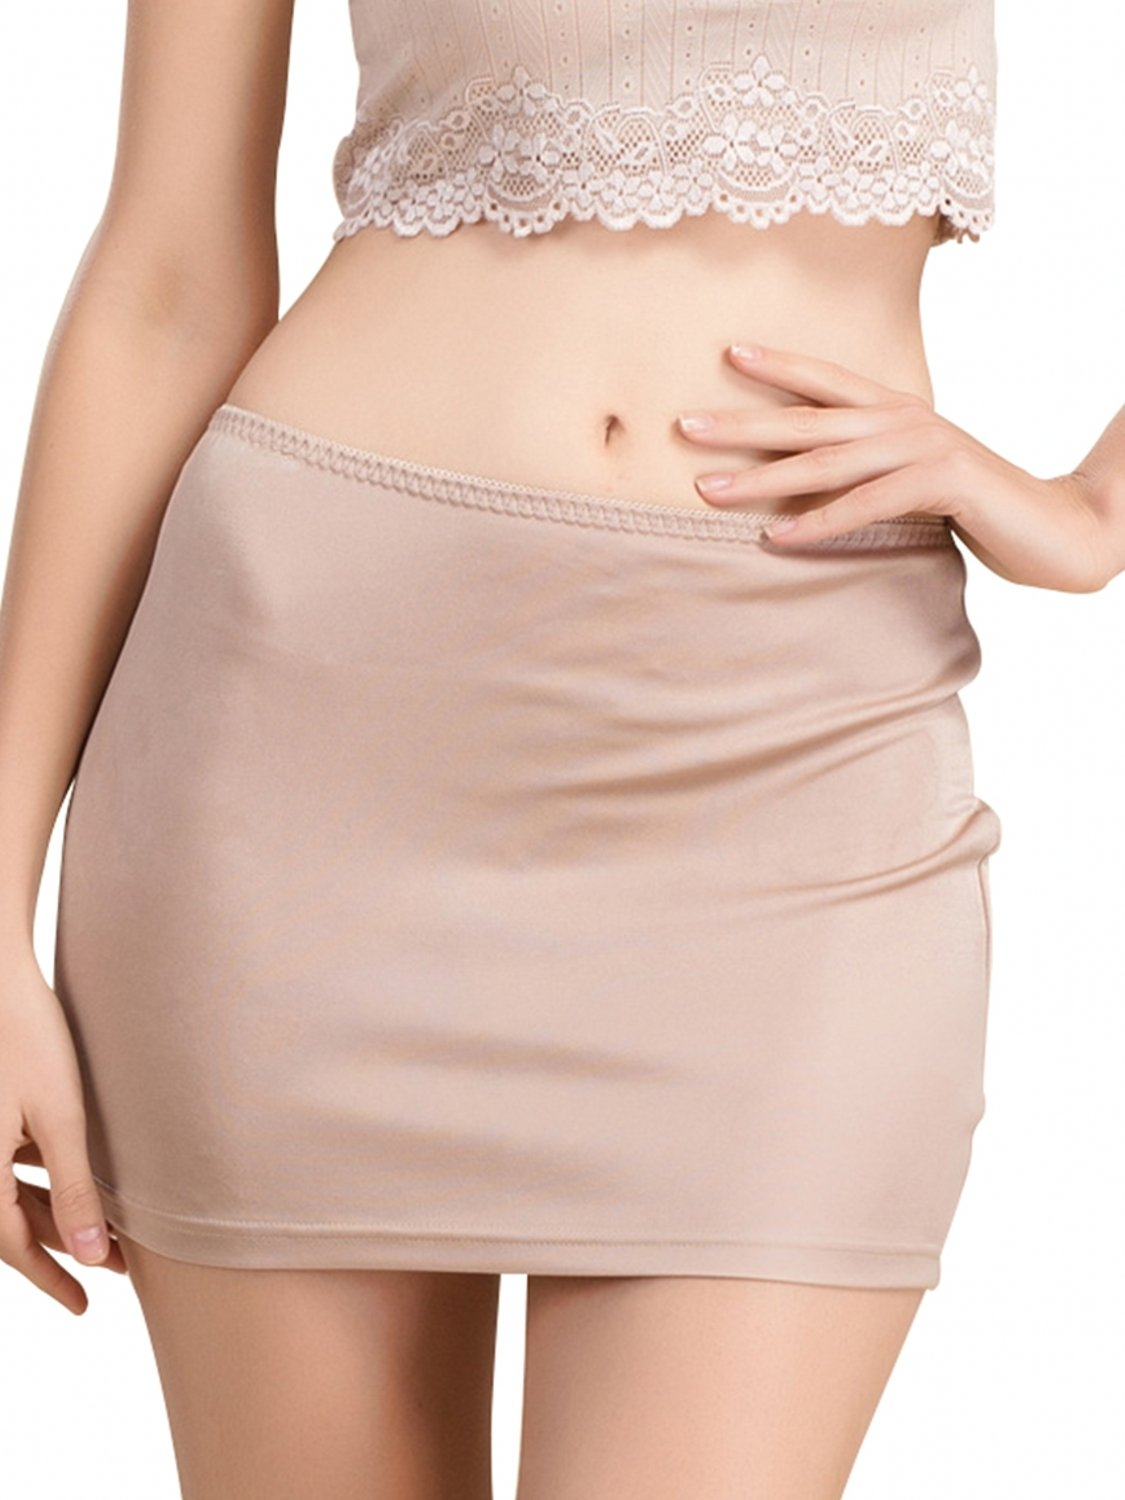 916d20368167c MisShow Women's Invisibly Lightweight Smooth Body Foundation Half Slip (Nude,L)